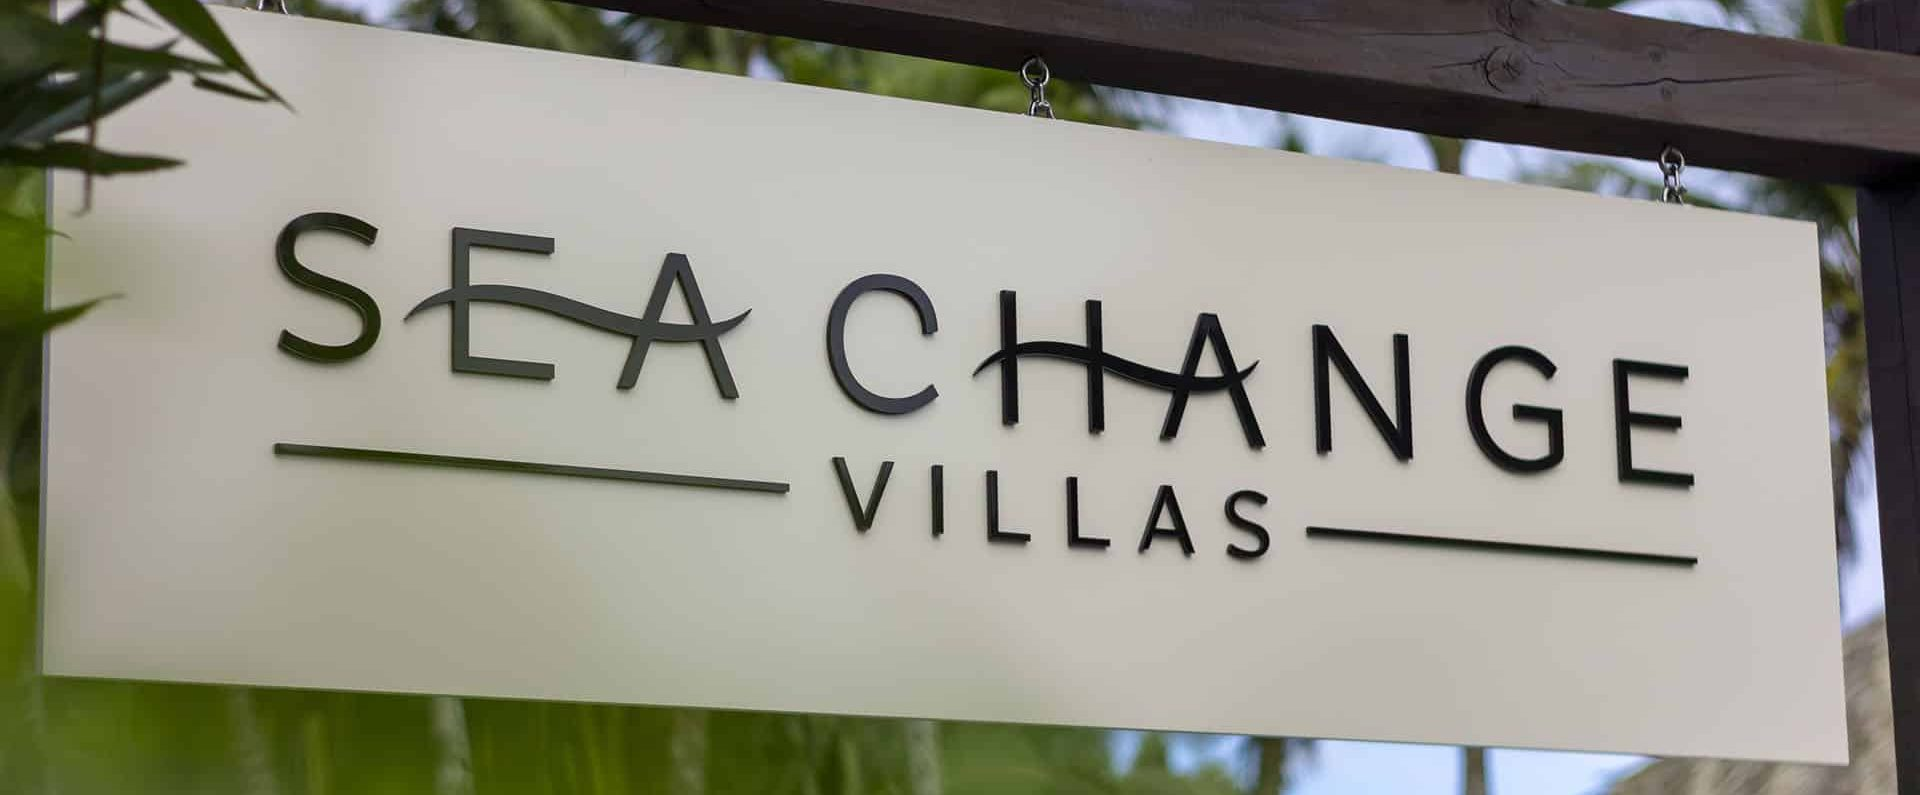 sea-change-villas-about-us-web